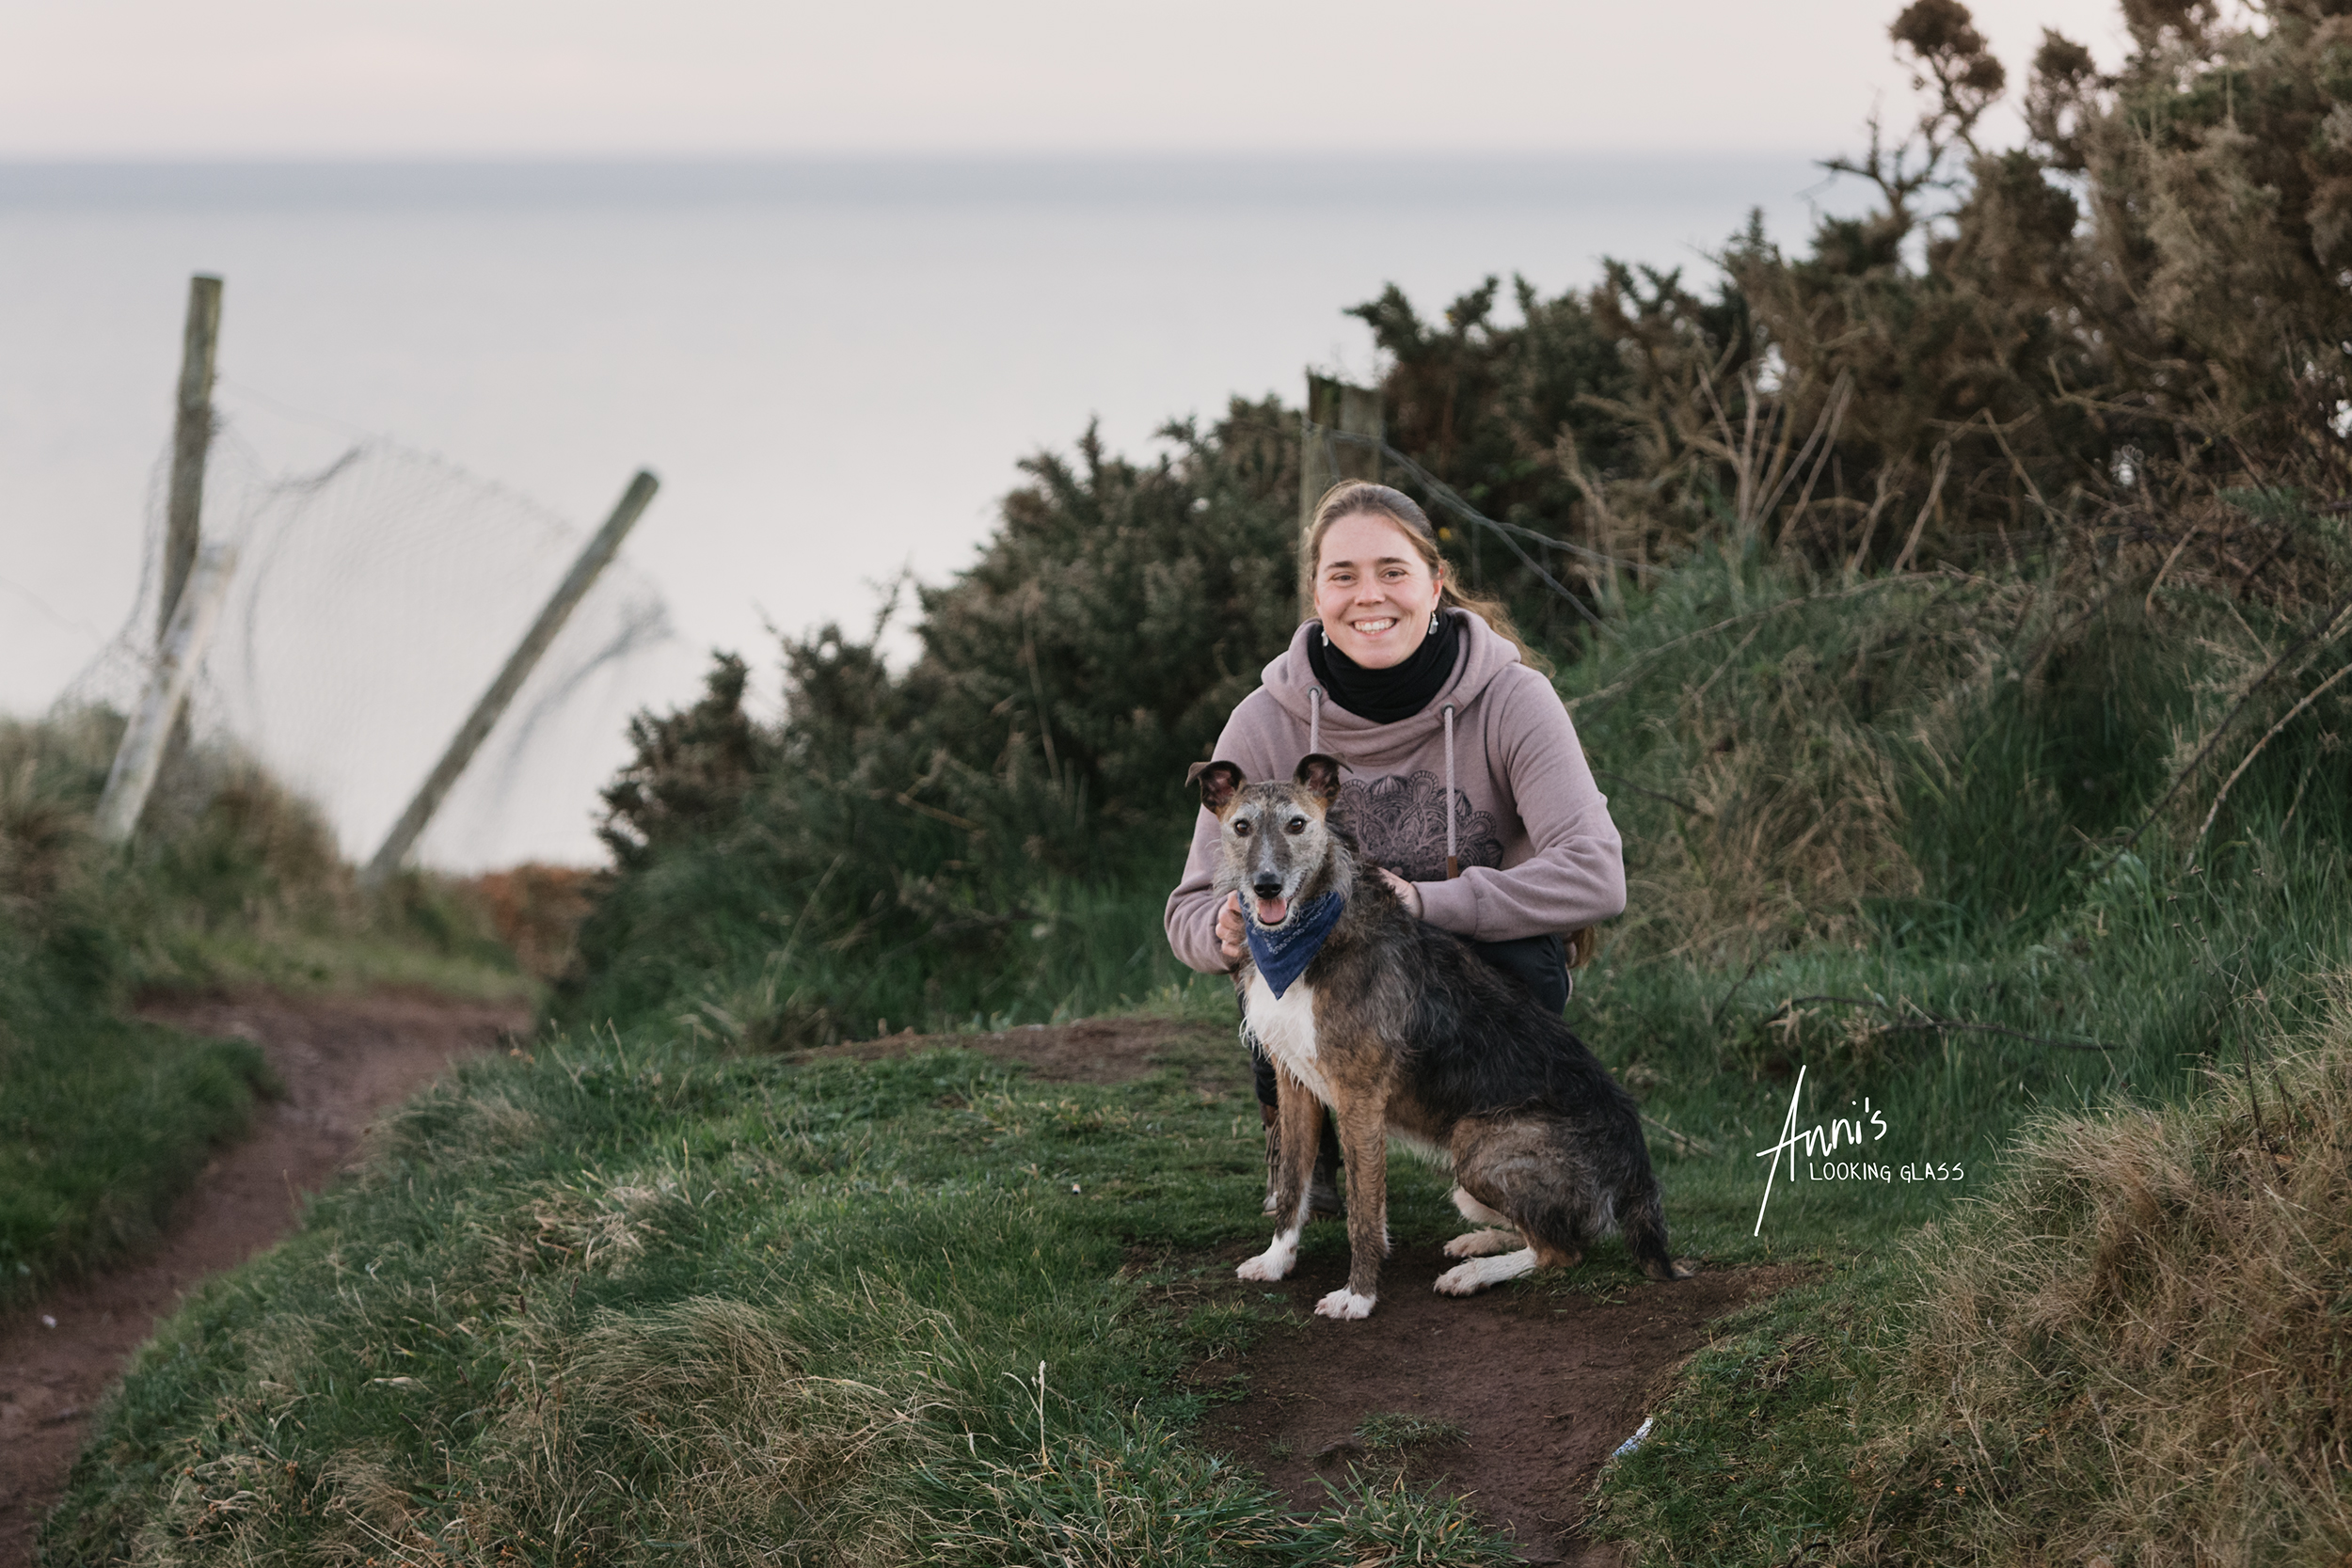 Dog Photographer Loughborough, Leicestershire: A greyhound wearing a blue bandana and a young woman in front of a coastal view in Co. Waterford, Ireland. 24th April 2018